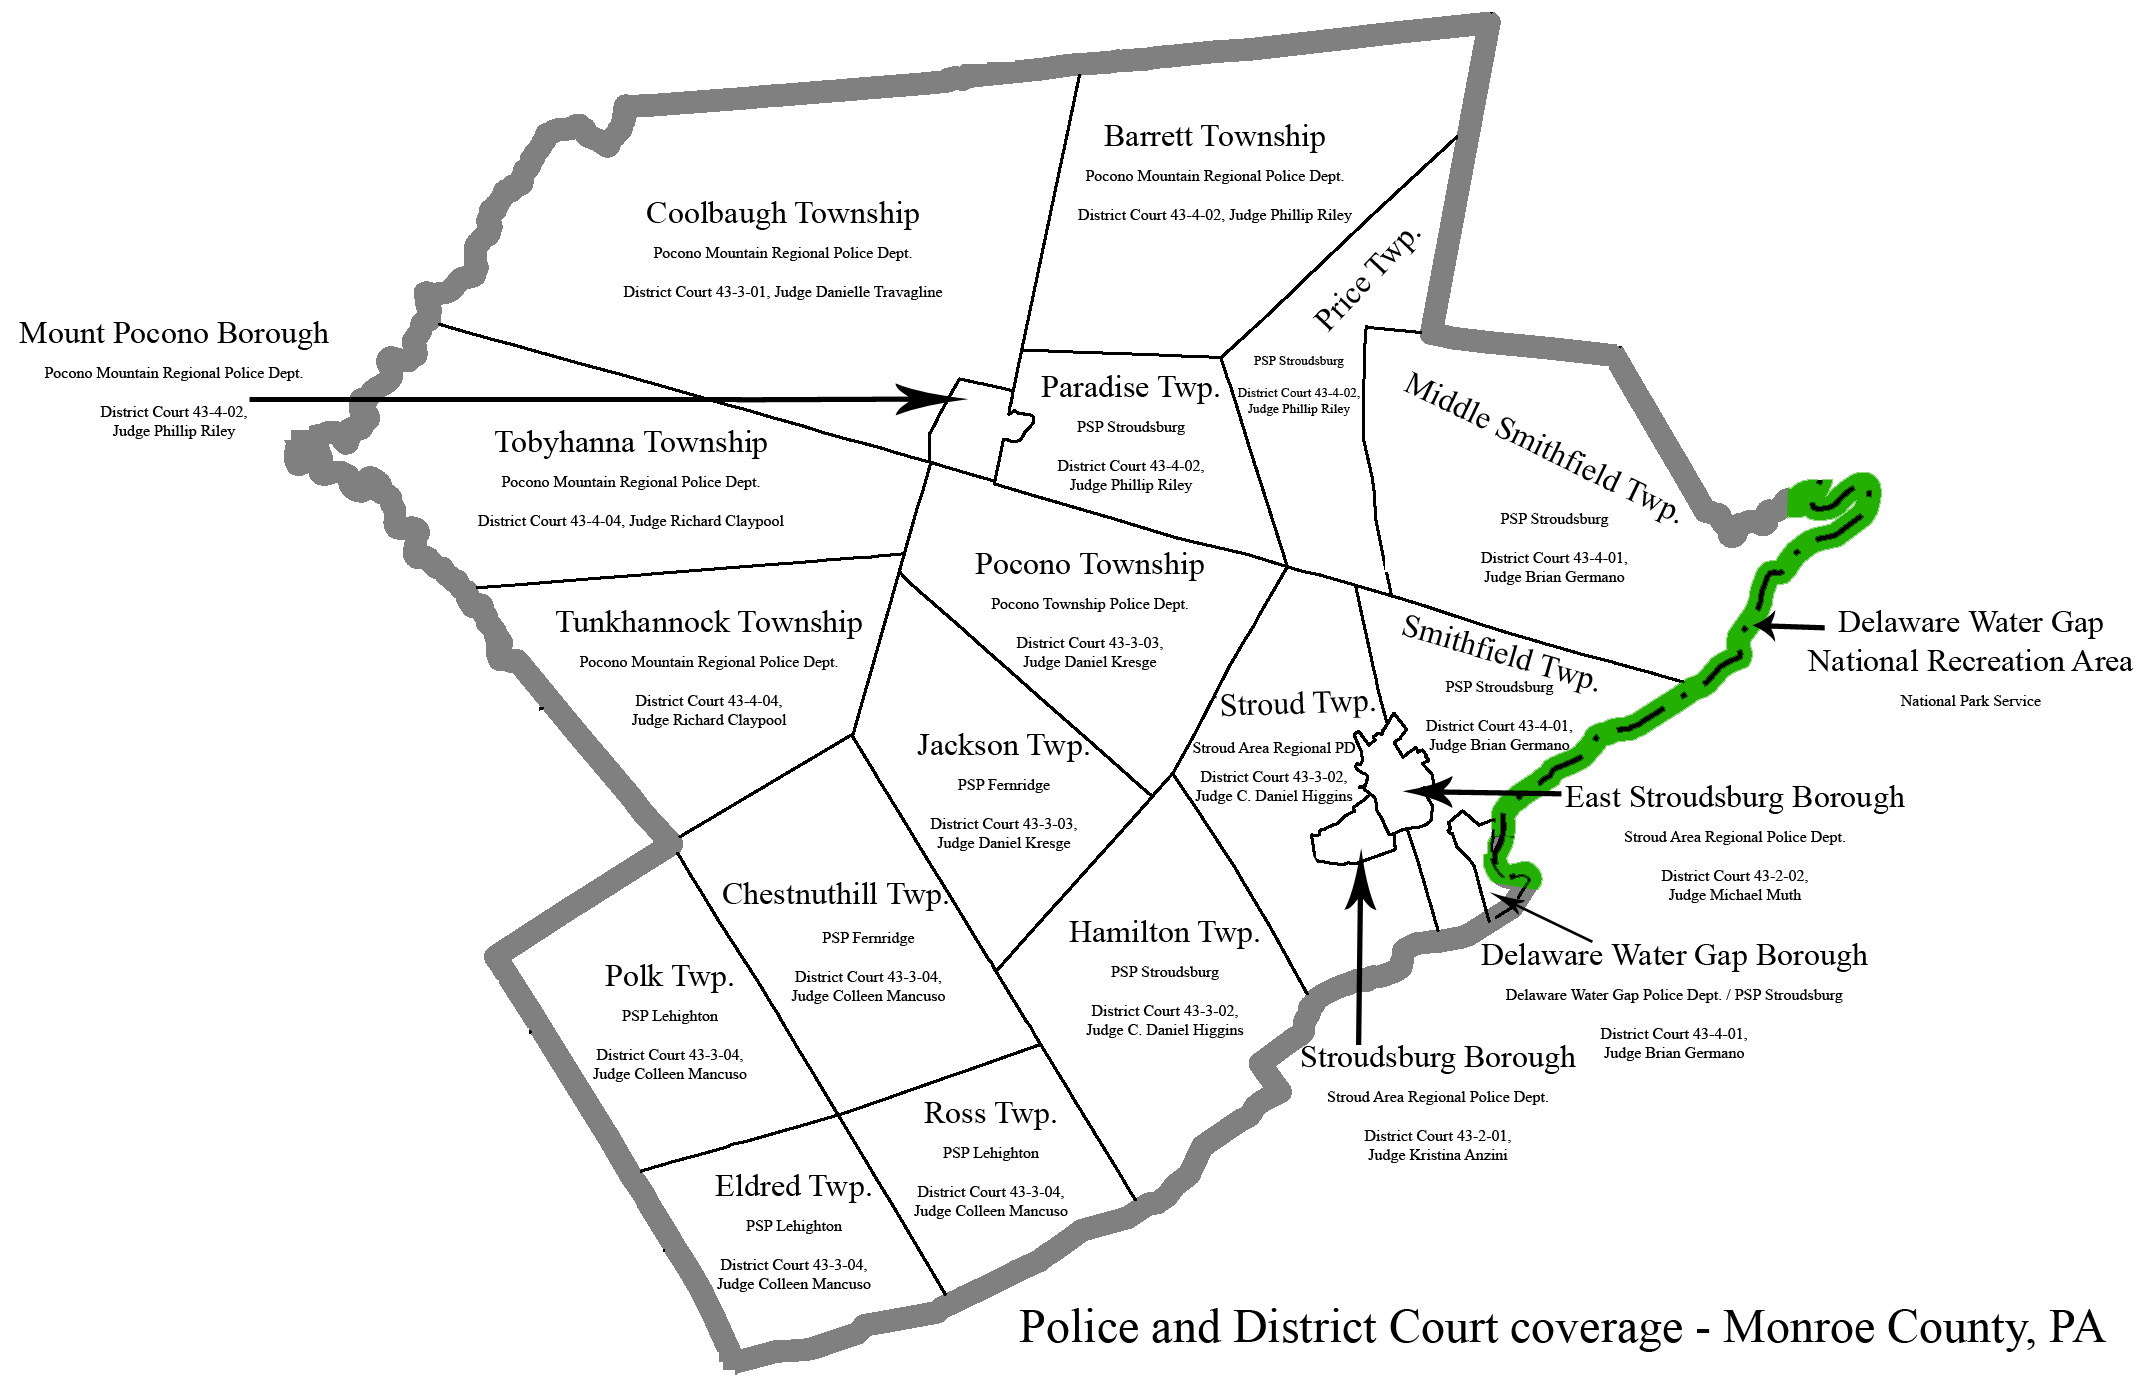 Police And District Court Jurisdictions In Monroe County Monroe County Office Of The District